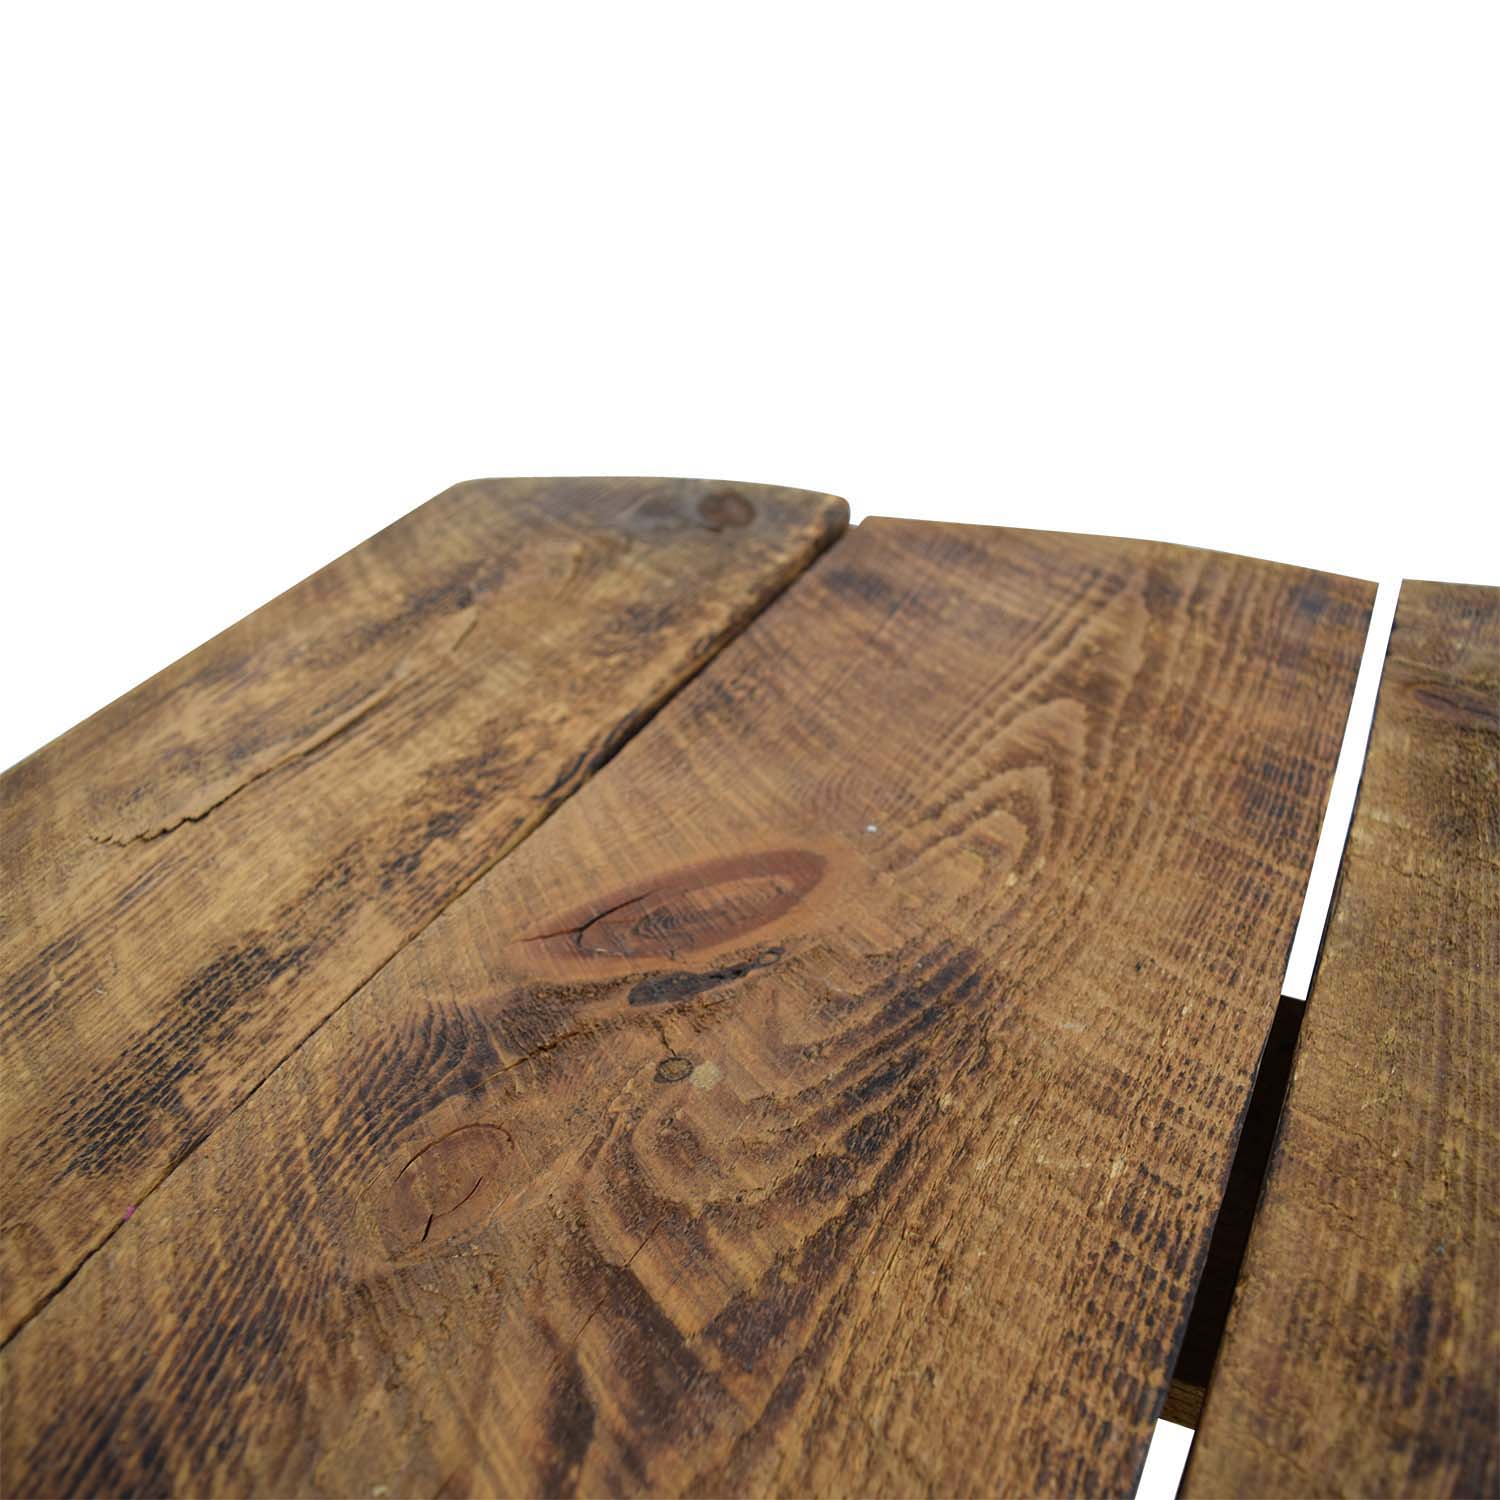 shop Brooklyn Flea Market Brooklyn Flea Market Rustic Reclaimed Wood Table online